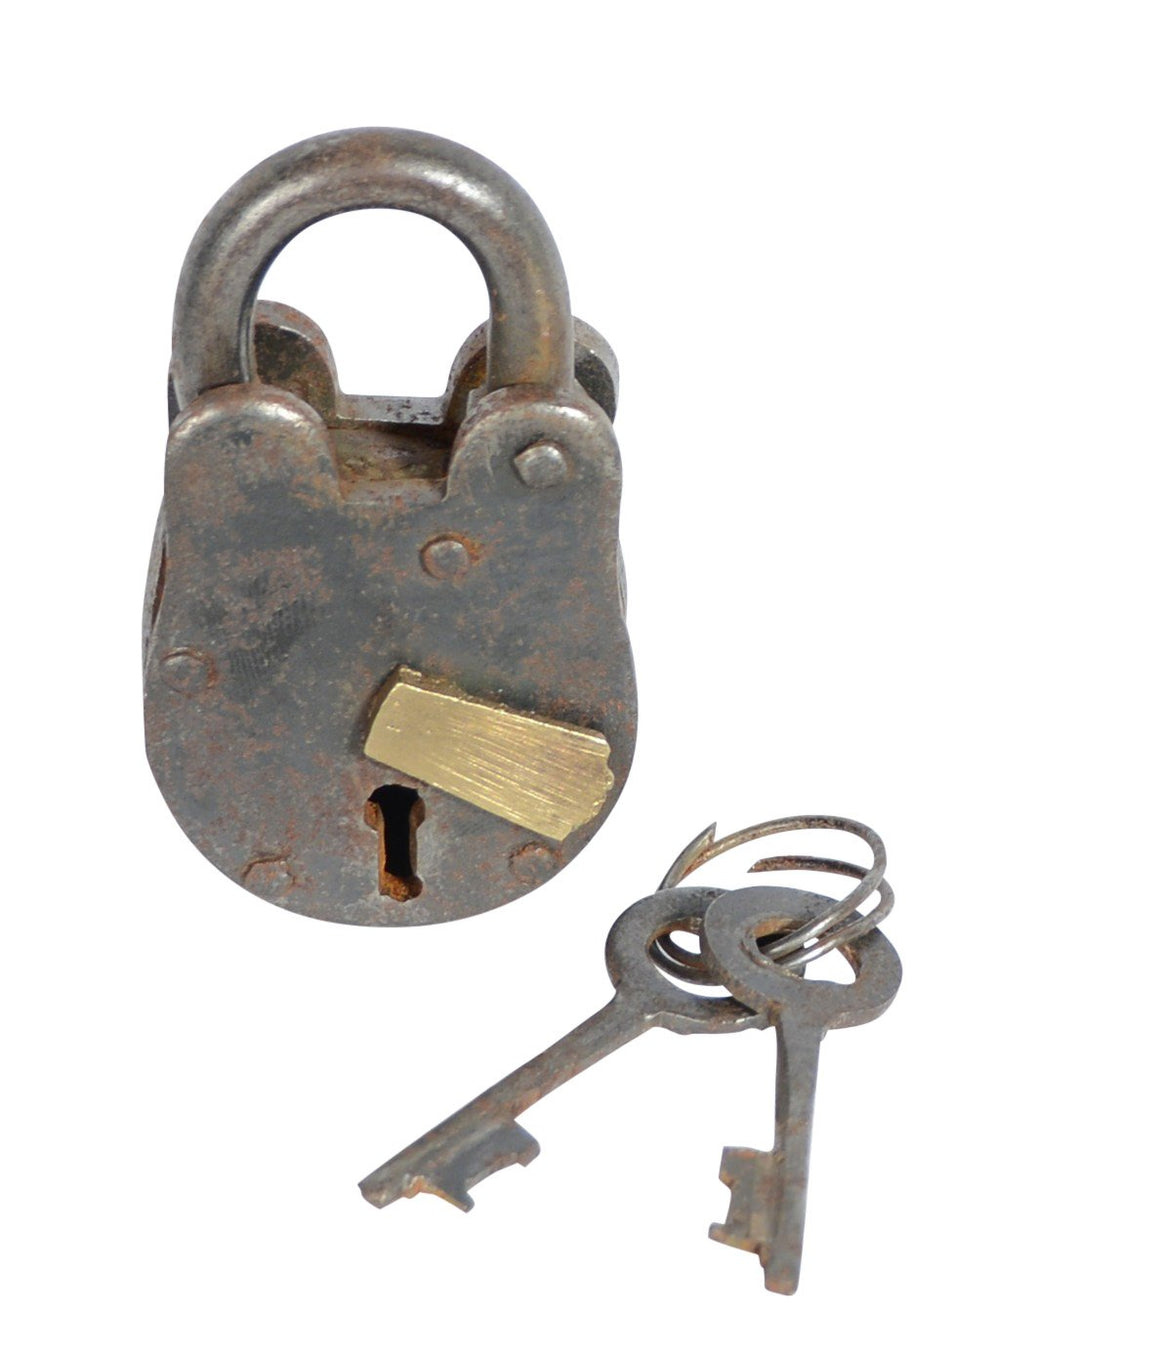 Metal Brass Lock & Keys- 2.75 inches high x 1.5 Inches Wide